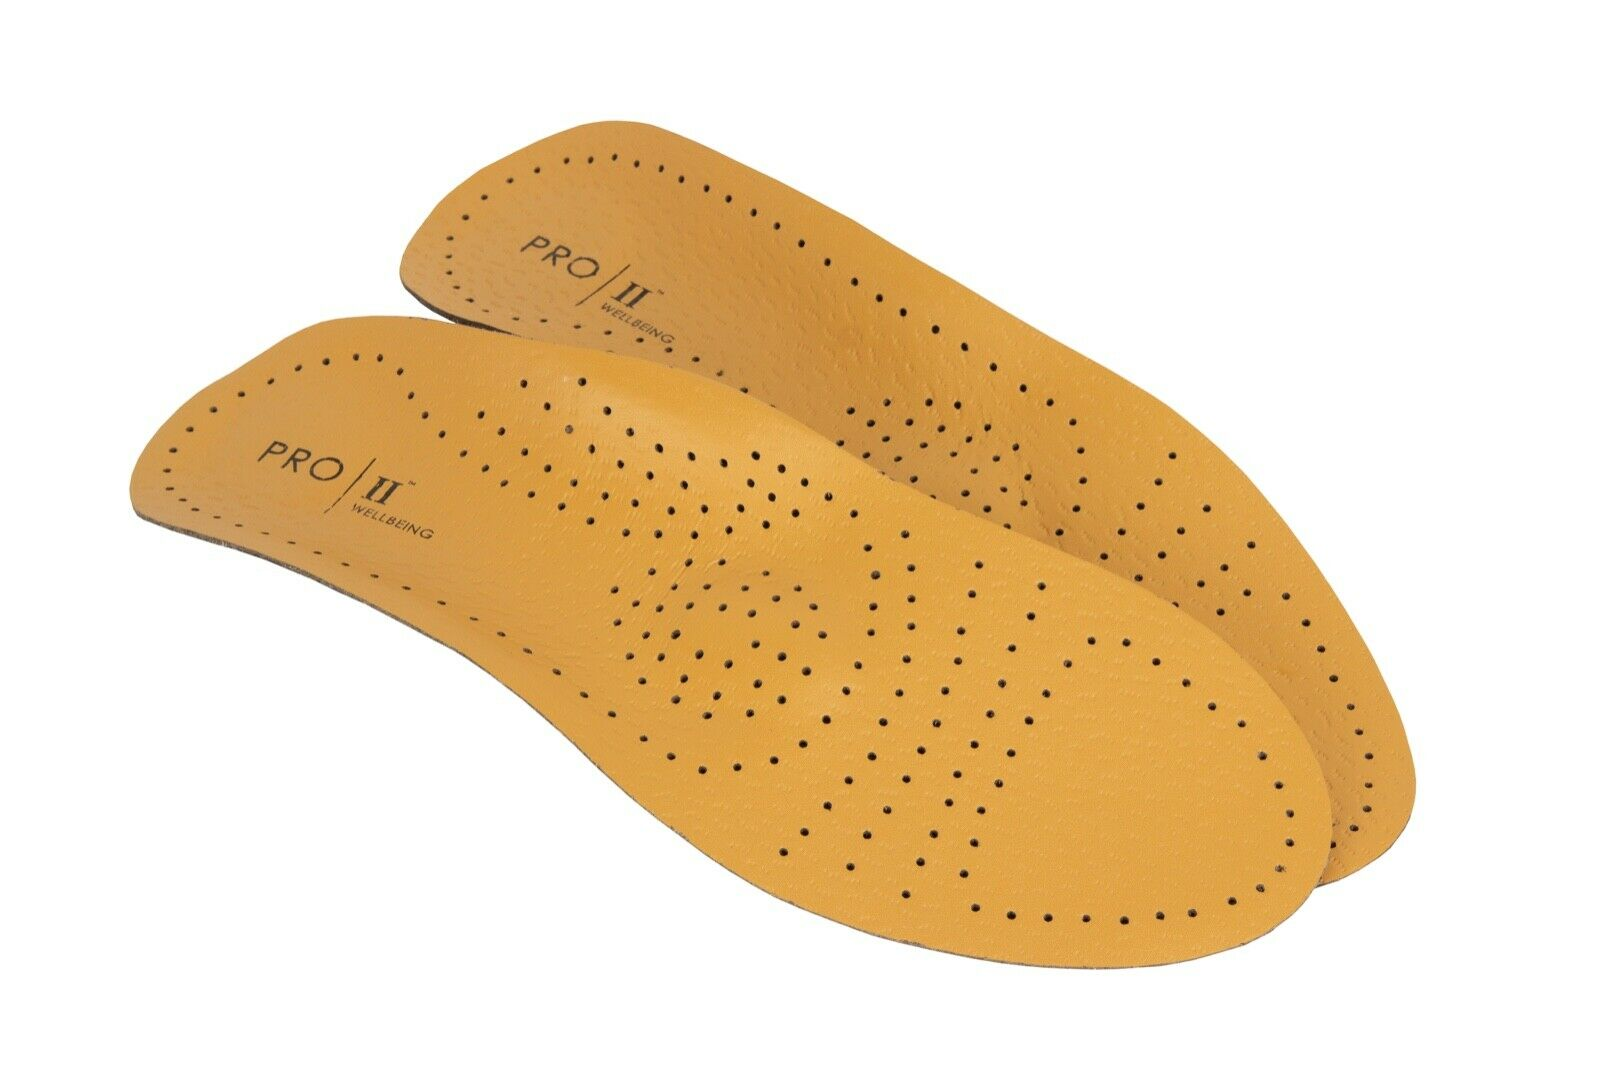 PRO-11-WELLBEING-Leather-Orthotic-insole-with-Metatarsal-raise 縮圖 9